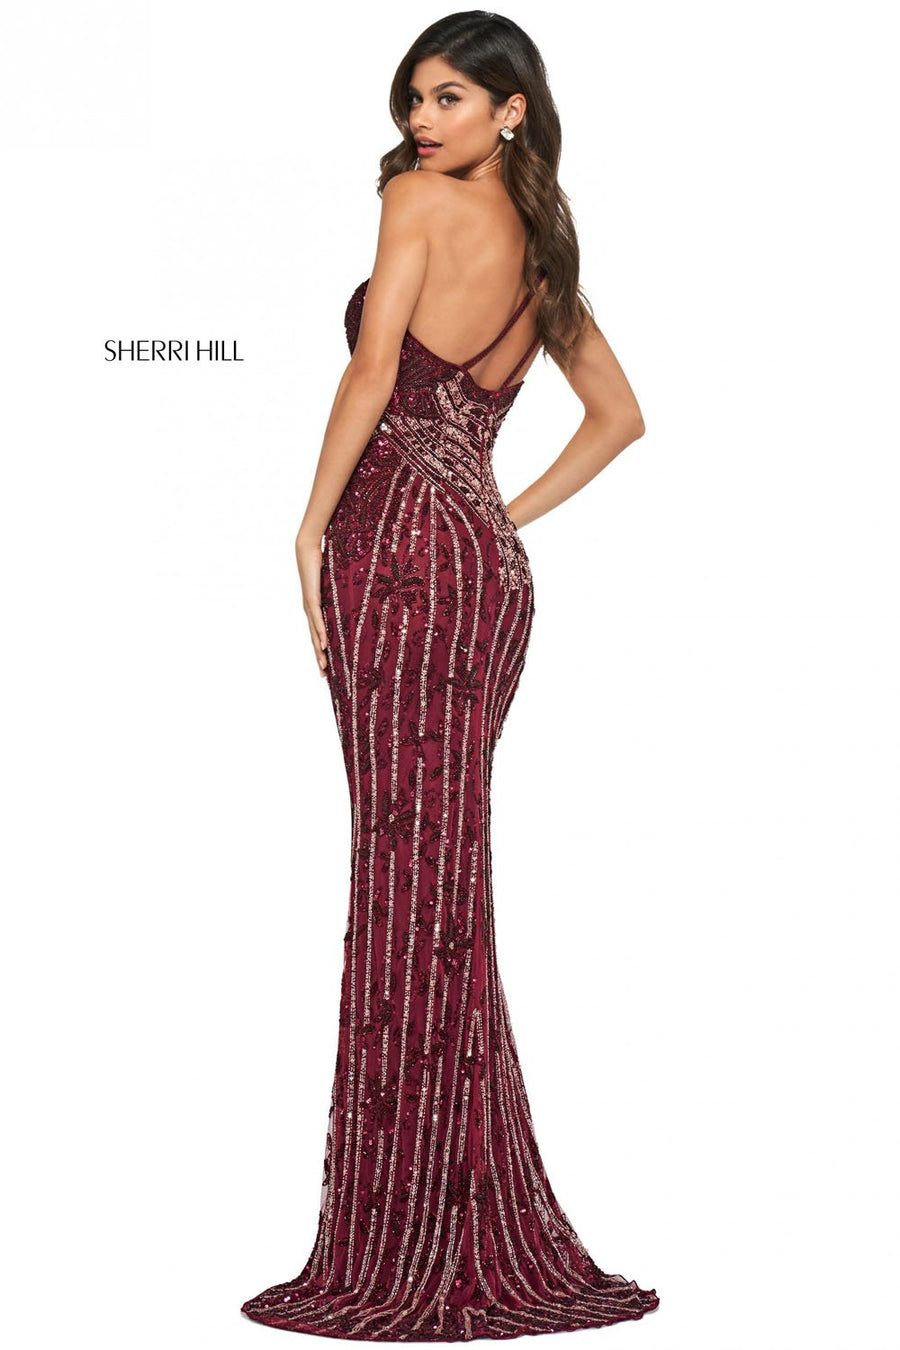 Sherri Hill 53913 prom dress images.  Sherri Hill 53913 is available in these colors: Burgundy Blush, Gold Blush, Light Gold Light Blue, Teal Multi.